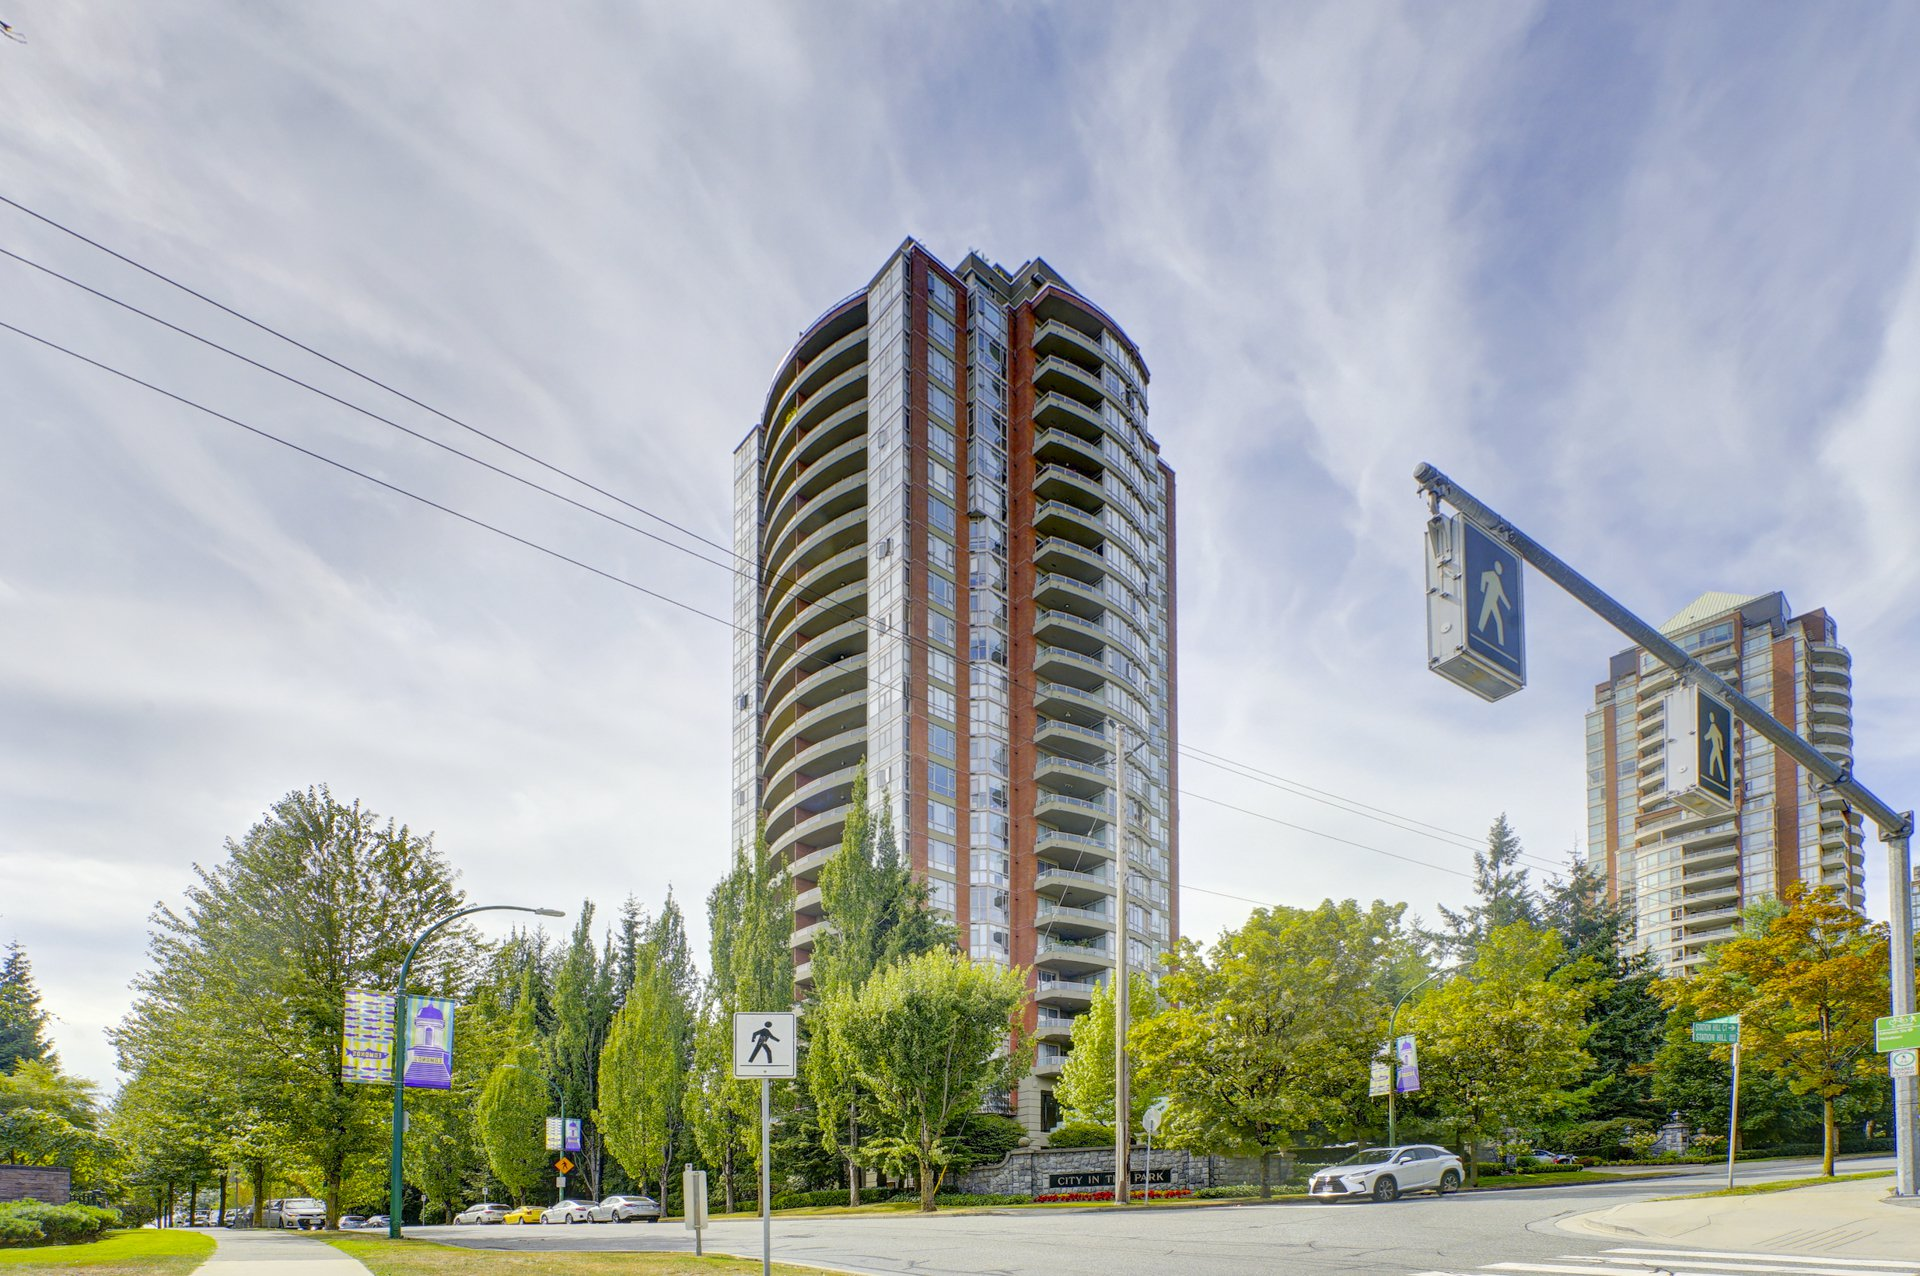 Main Photo: 2401 6888 STATION HILL DRIVE in Burnaby: South Slope Condo for sale (Burnaby South)  : MLS®# R2424113